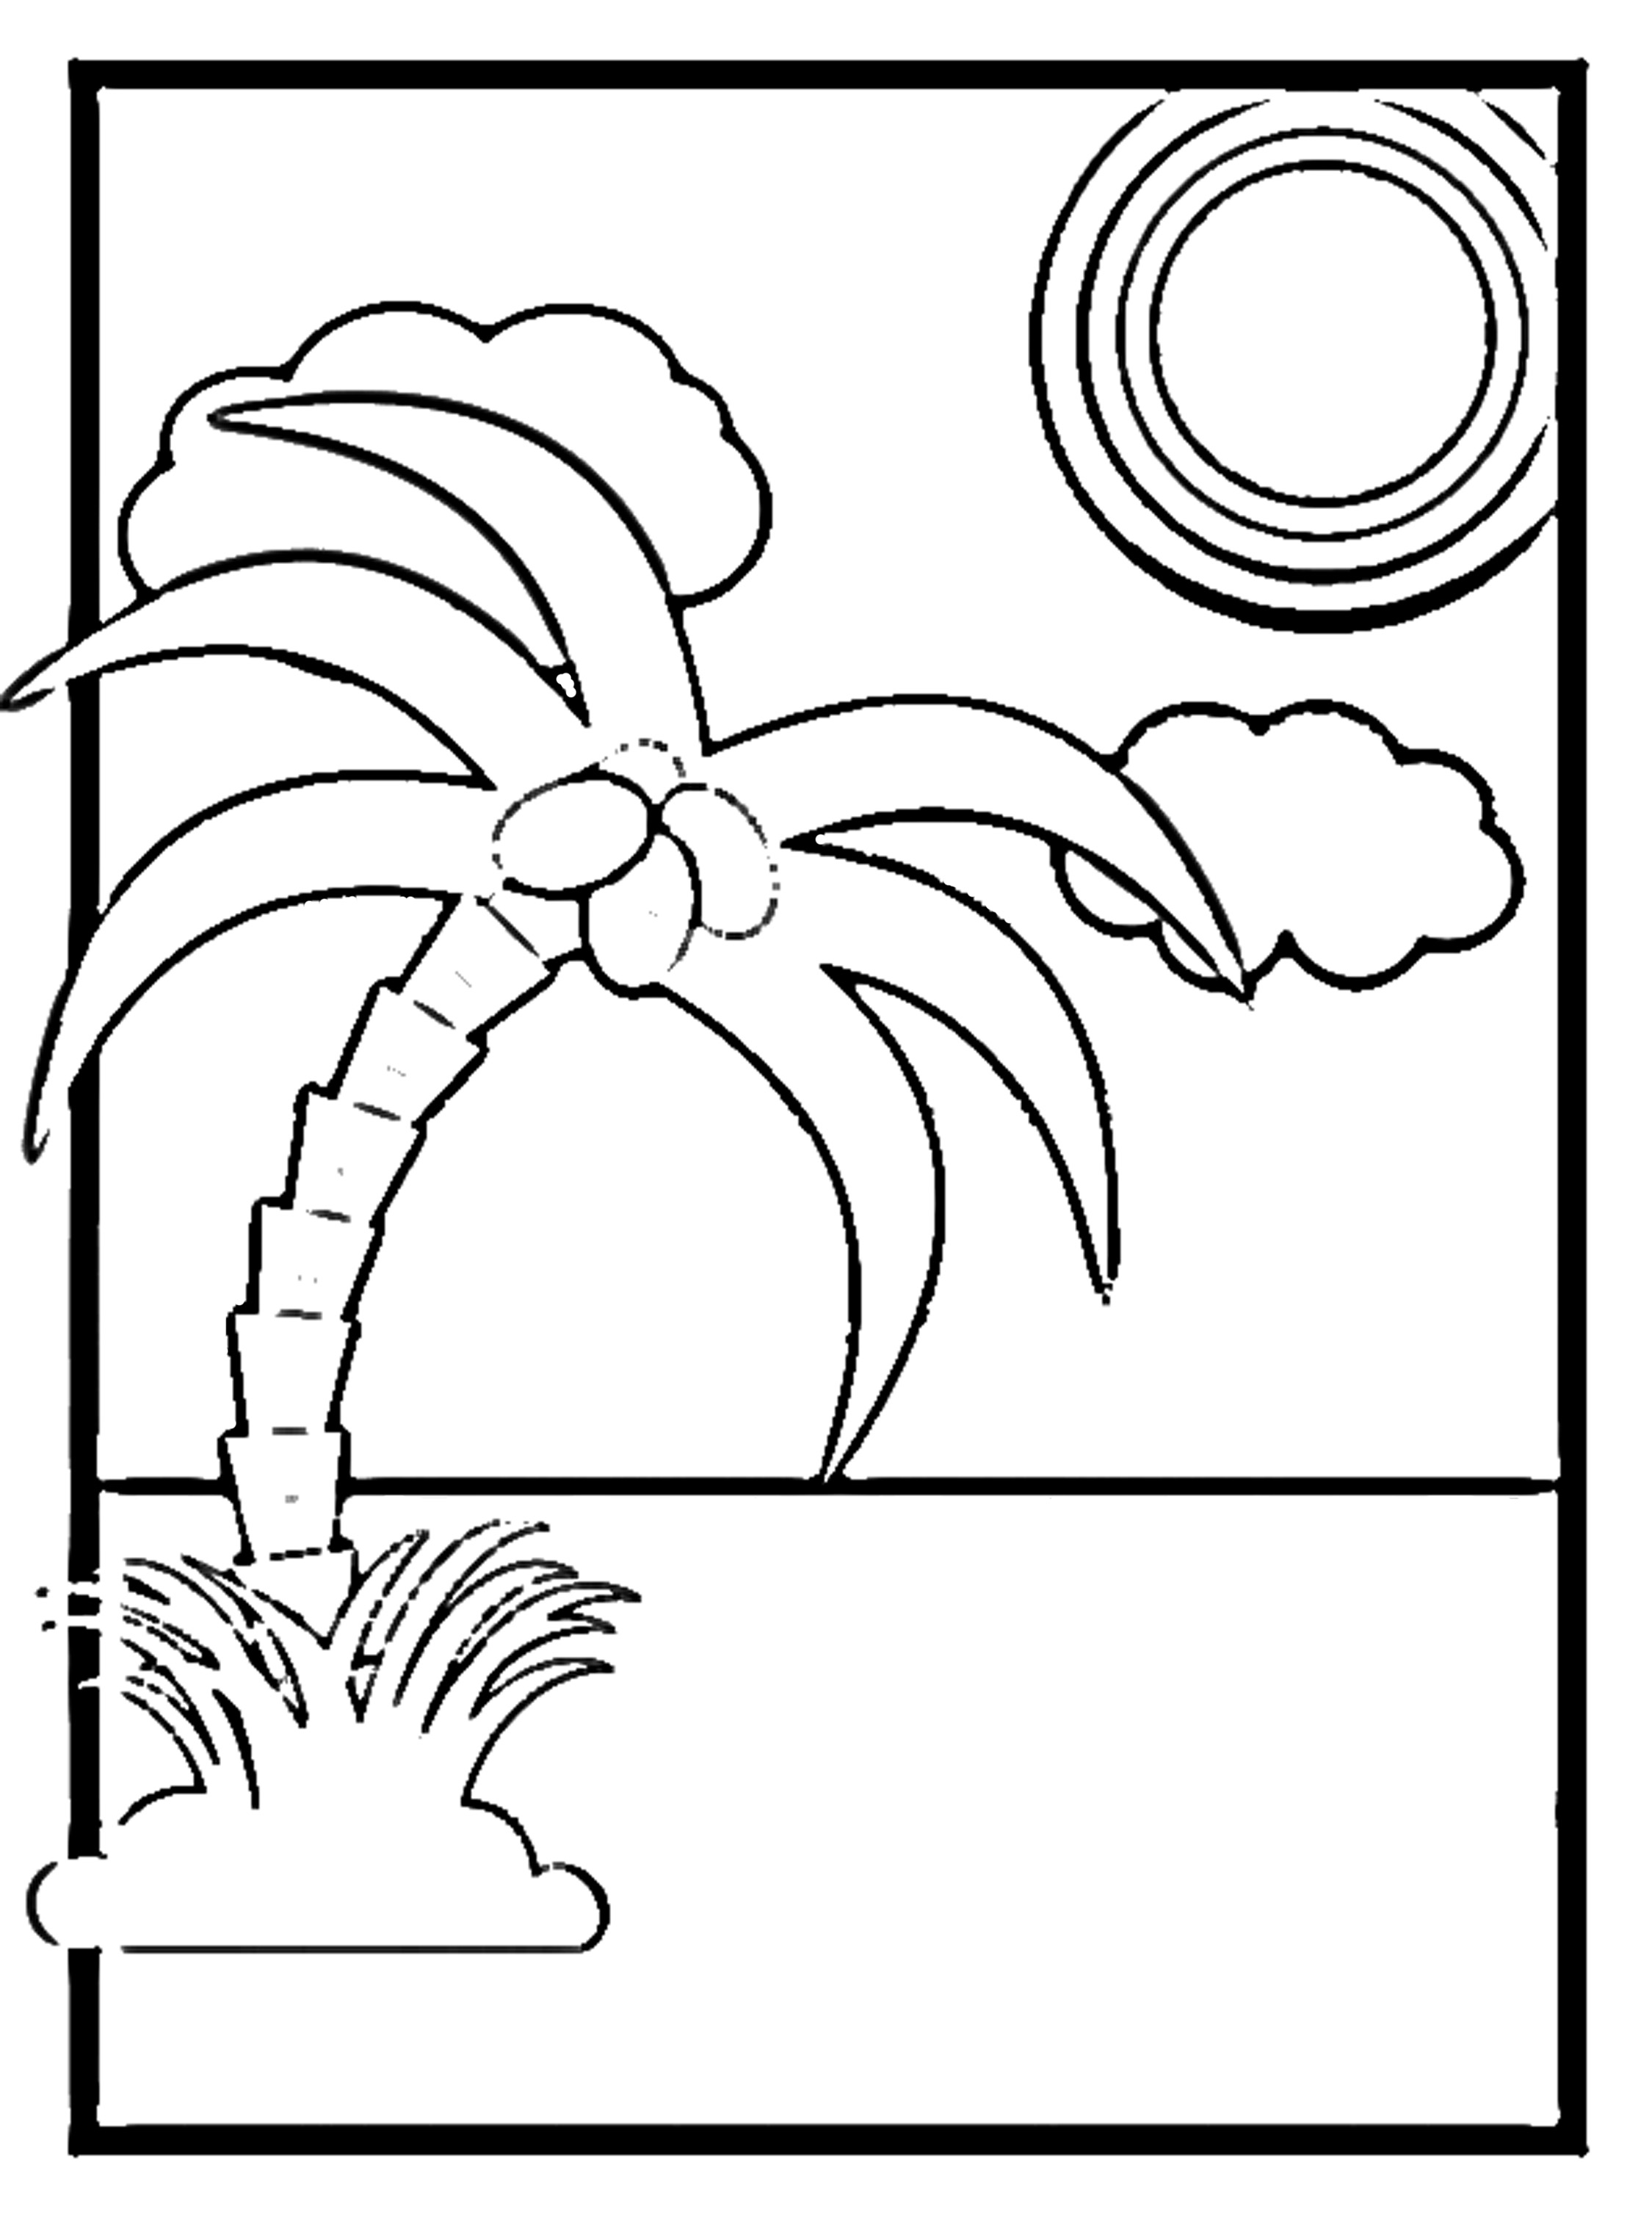 Coconut palm coloring page.